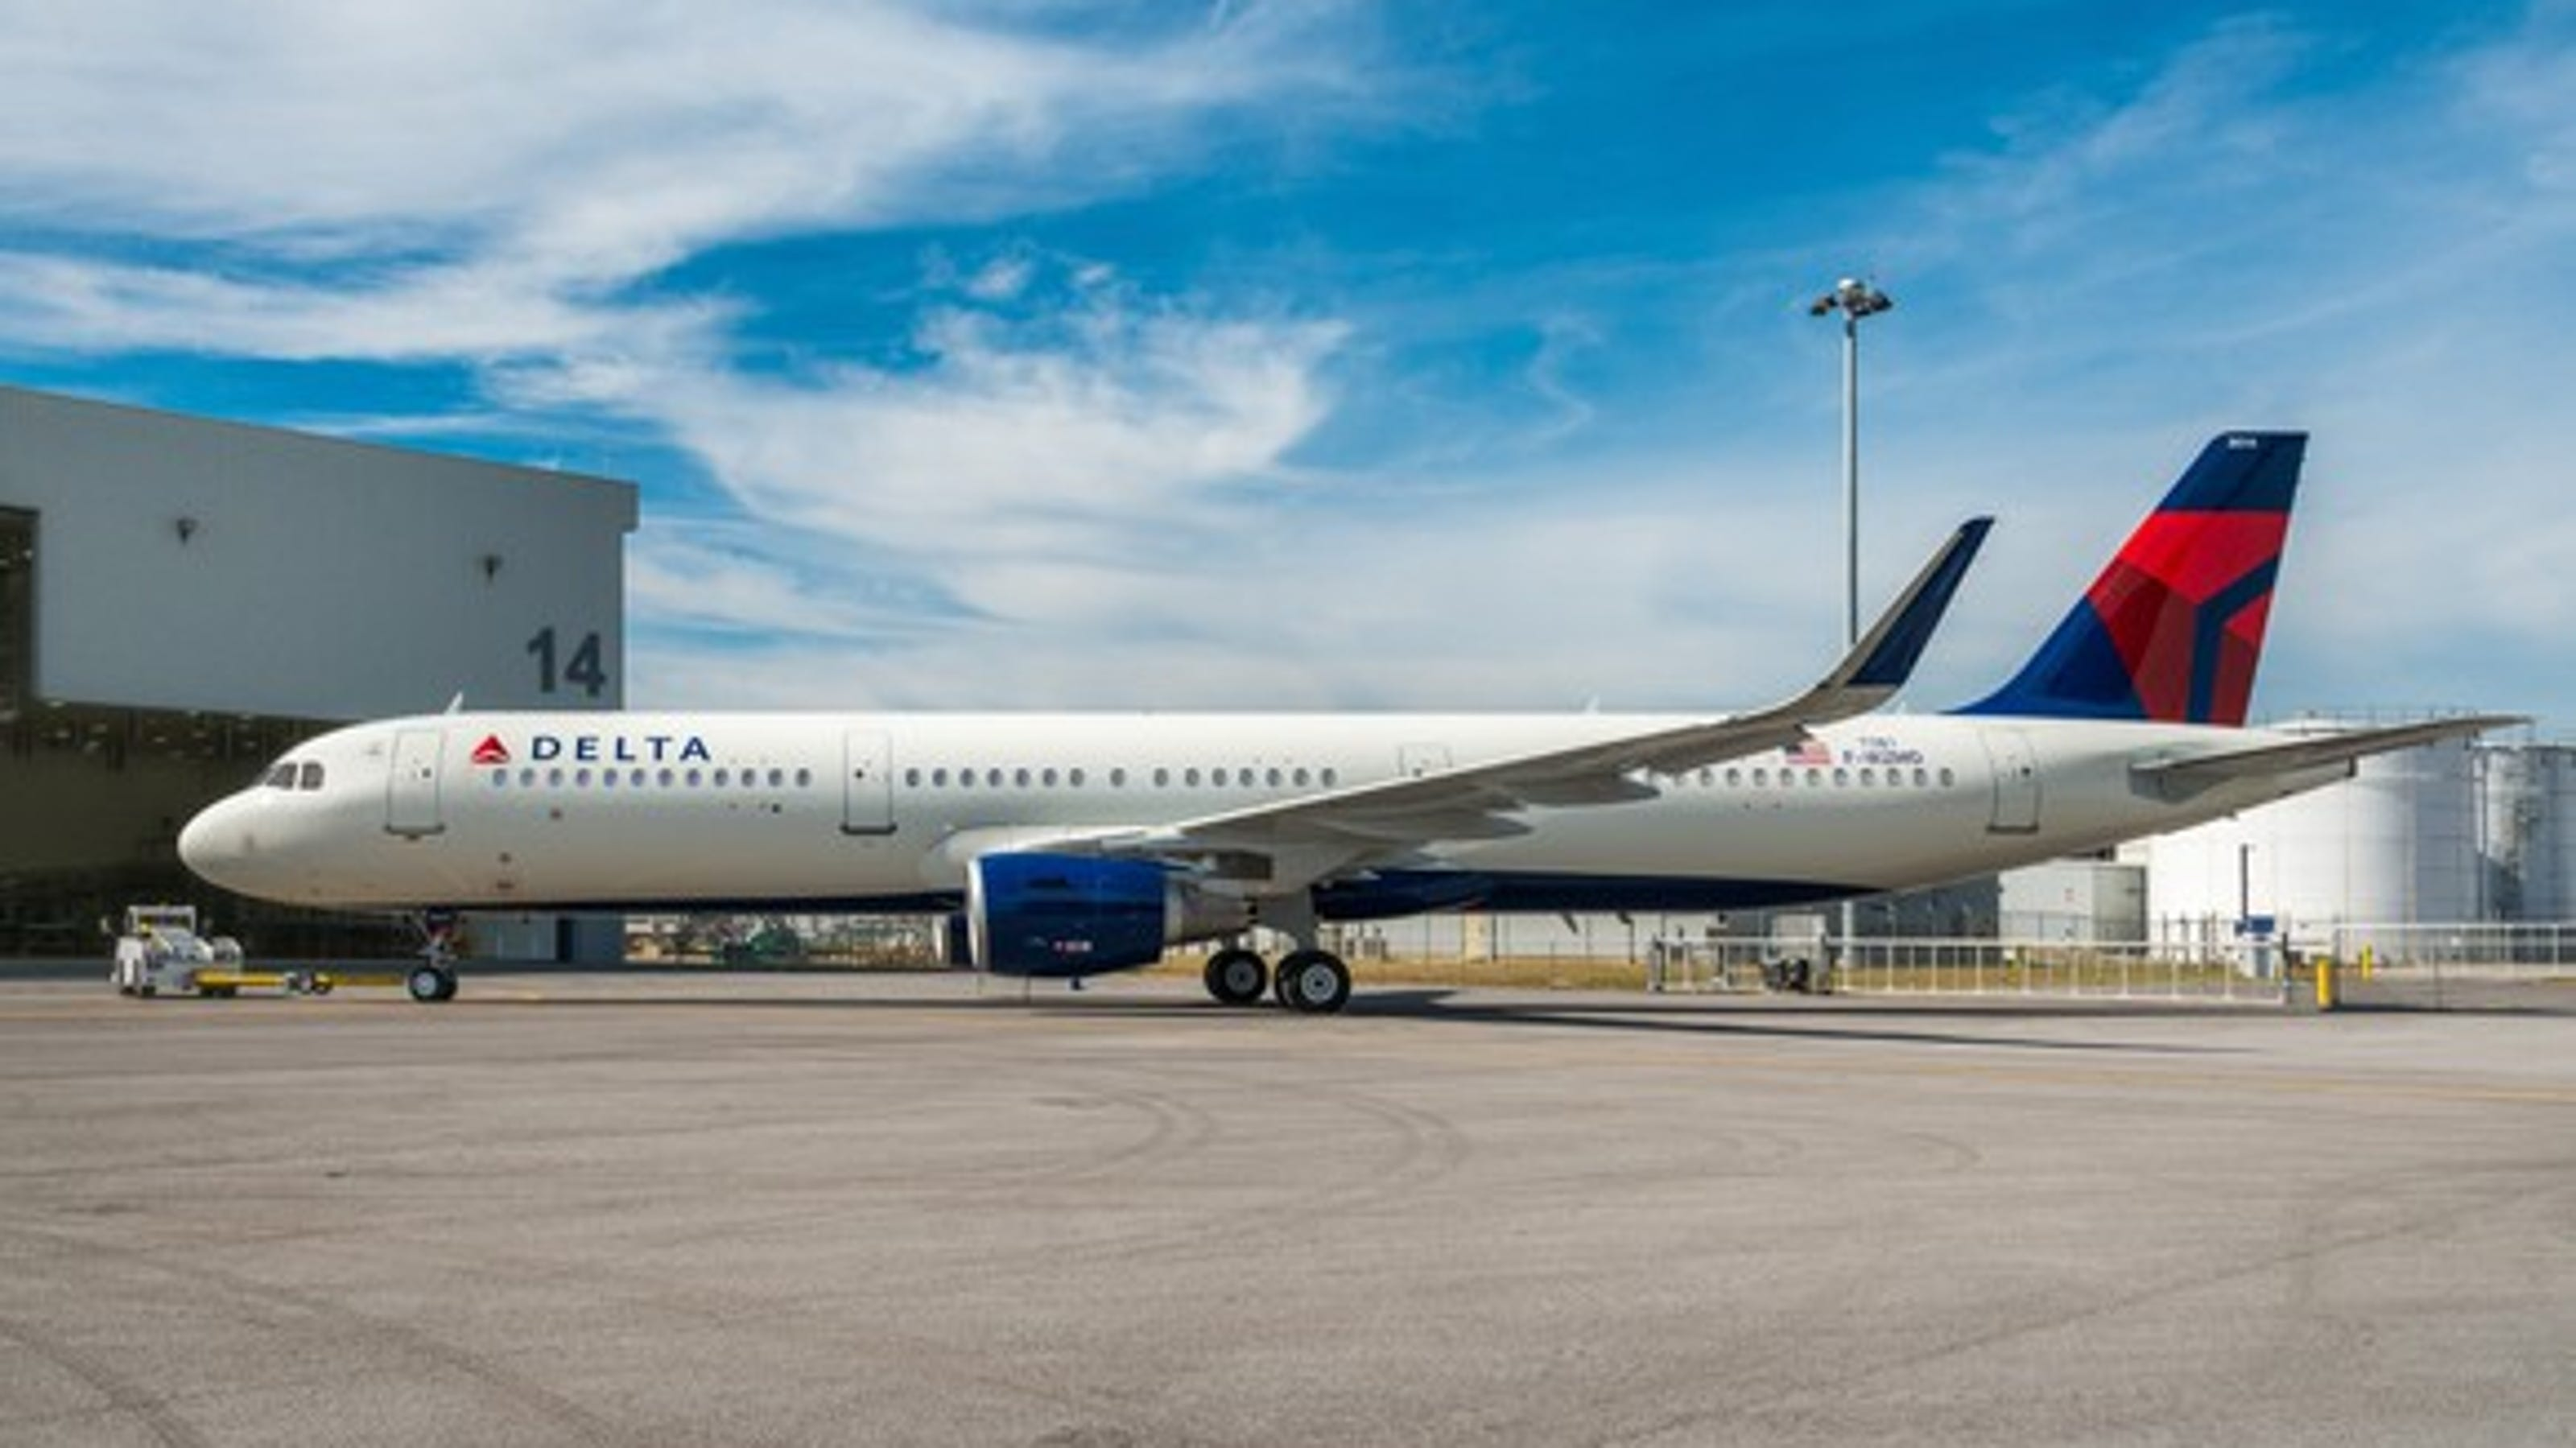 Delta Air Lines New Flights From Boston To Chicago Newark More